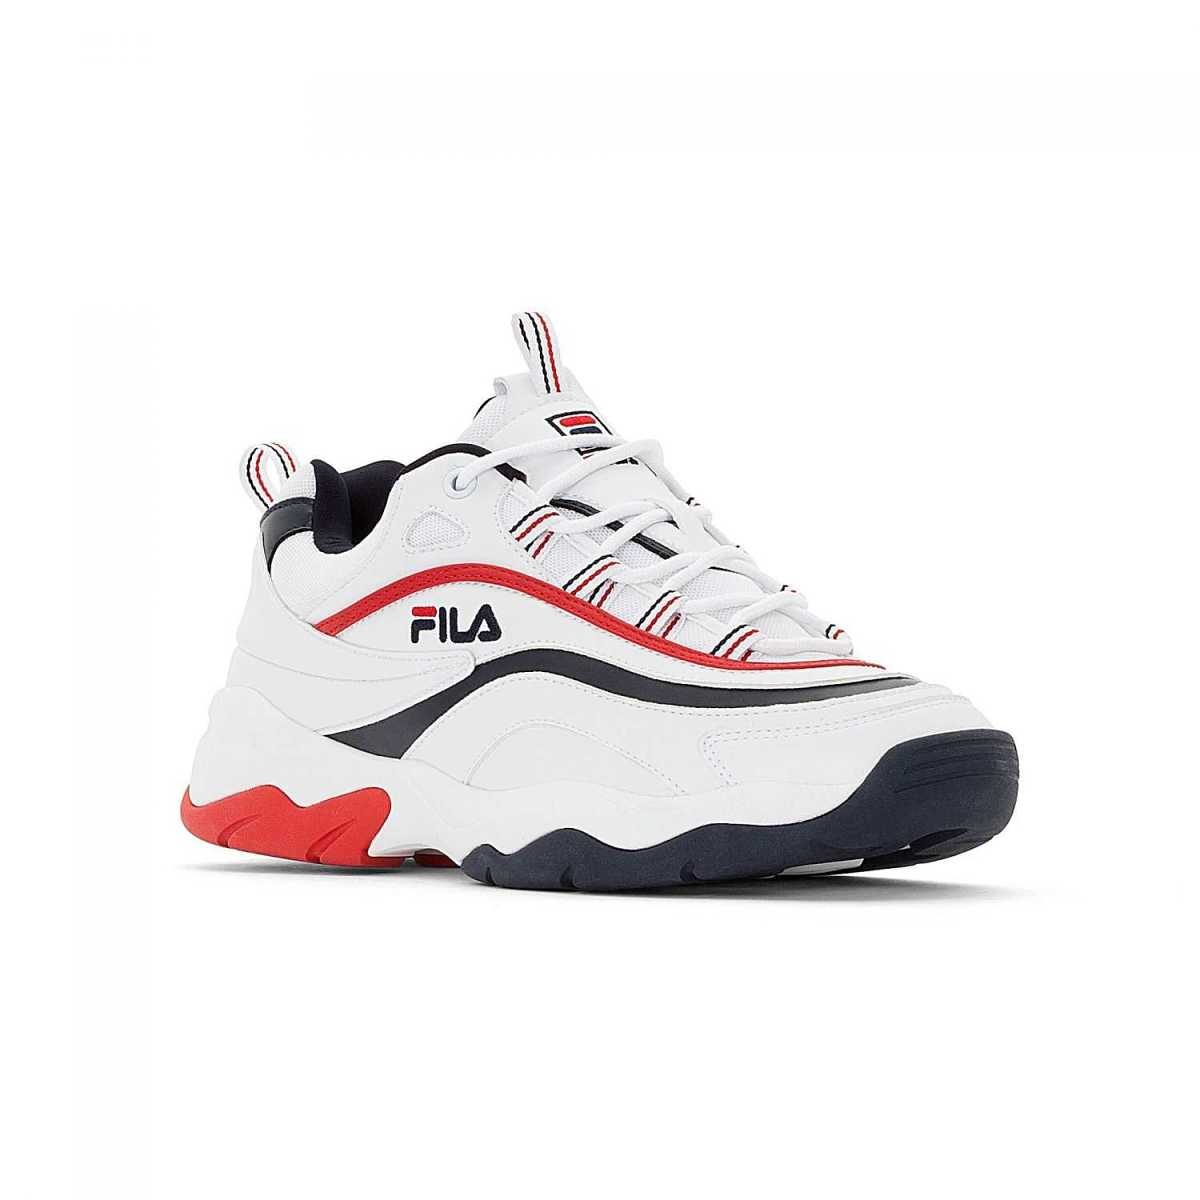 FILA Ray F Low Men white-navy-red in Red for Men - GOOFASH